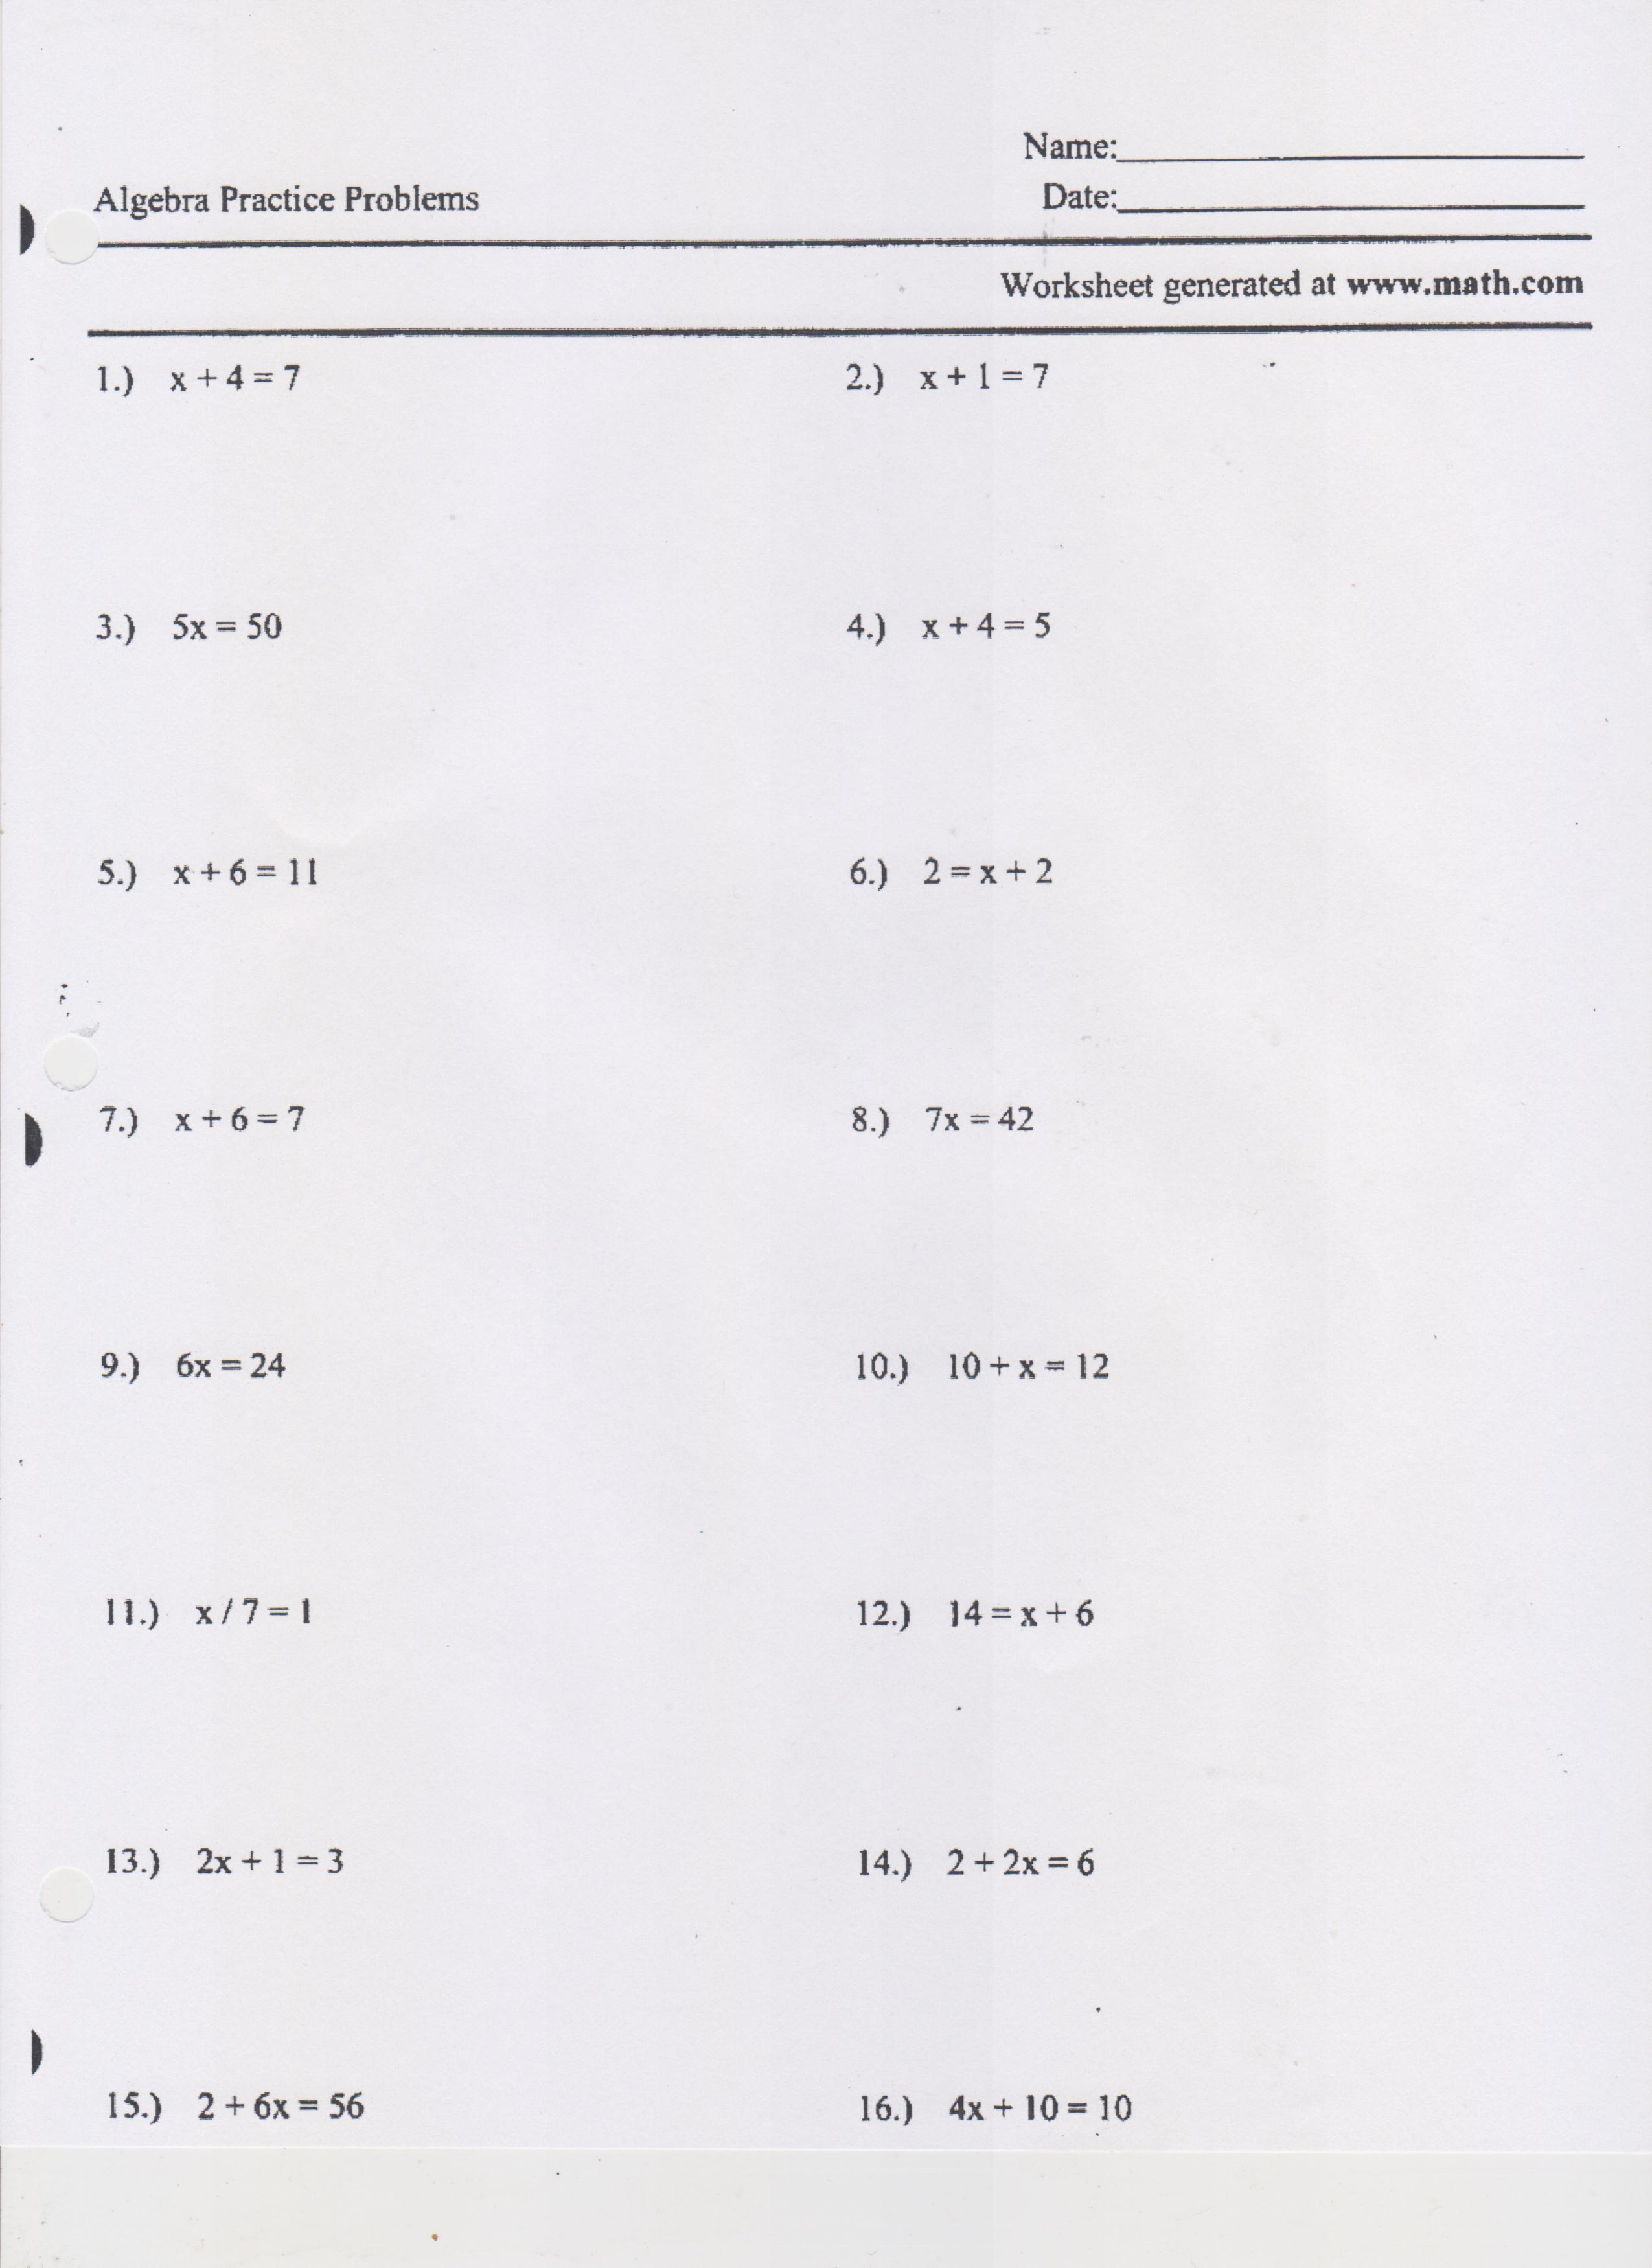 Writing And Solving One Step Equations Worksheet